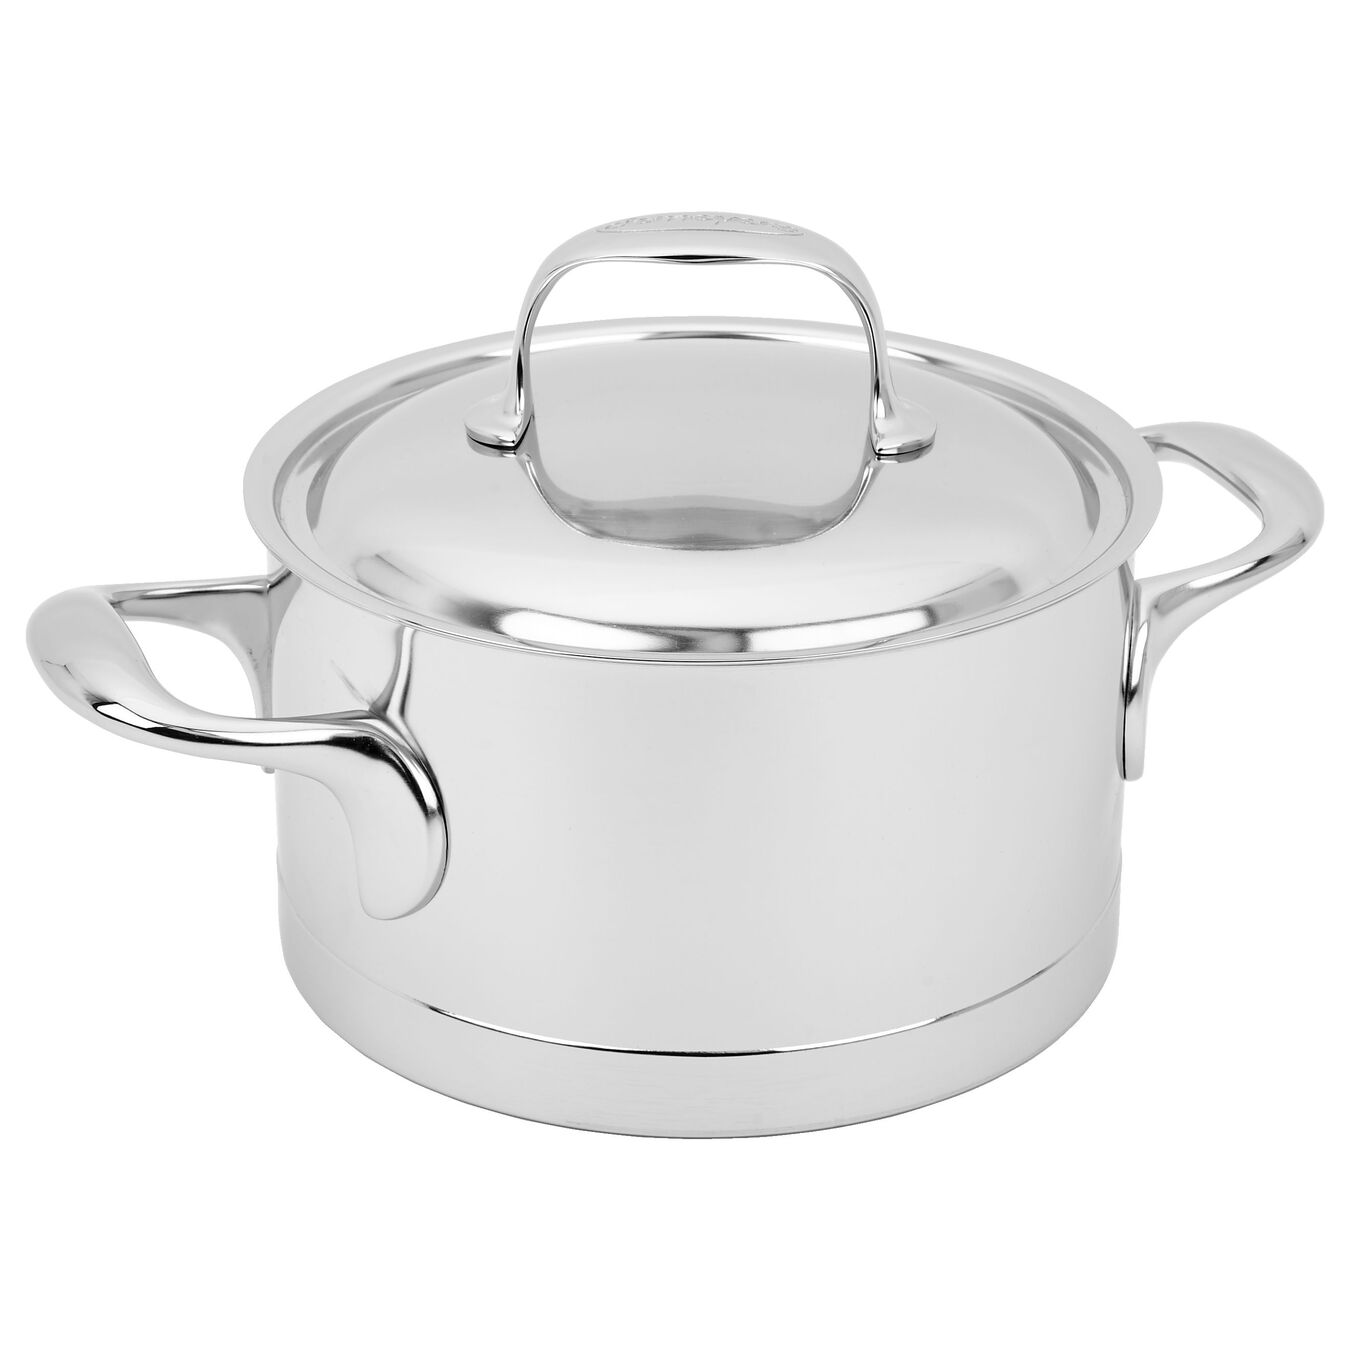 2,25 l 18/10 Stainless Steel Faitout with lid,,large 1